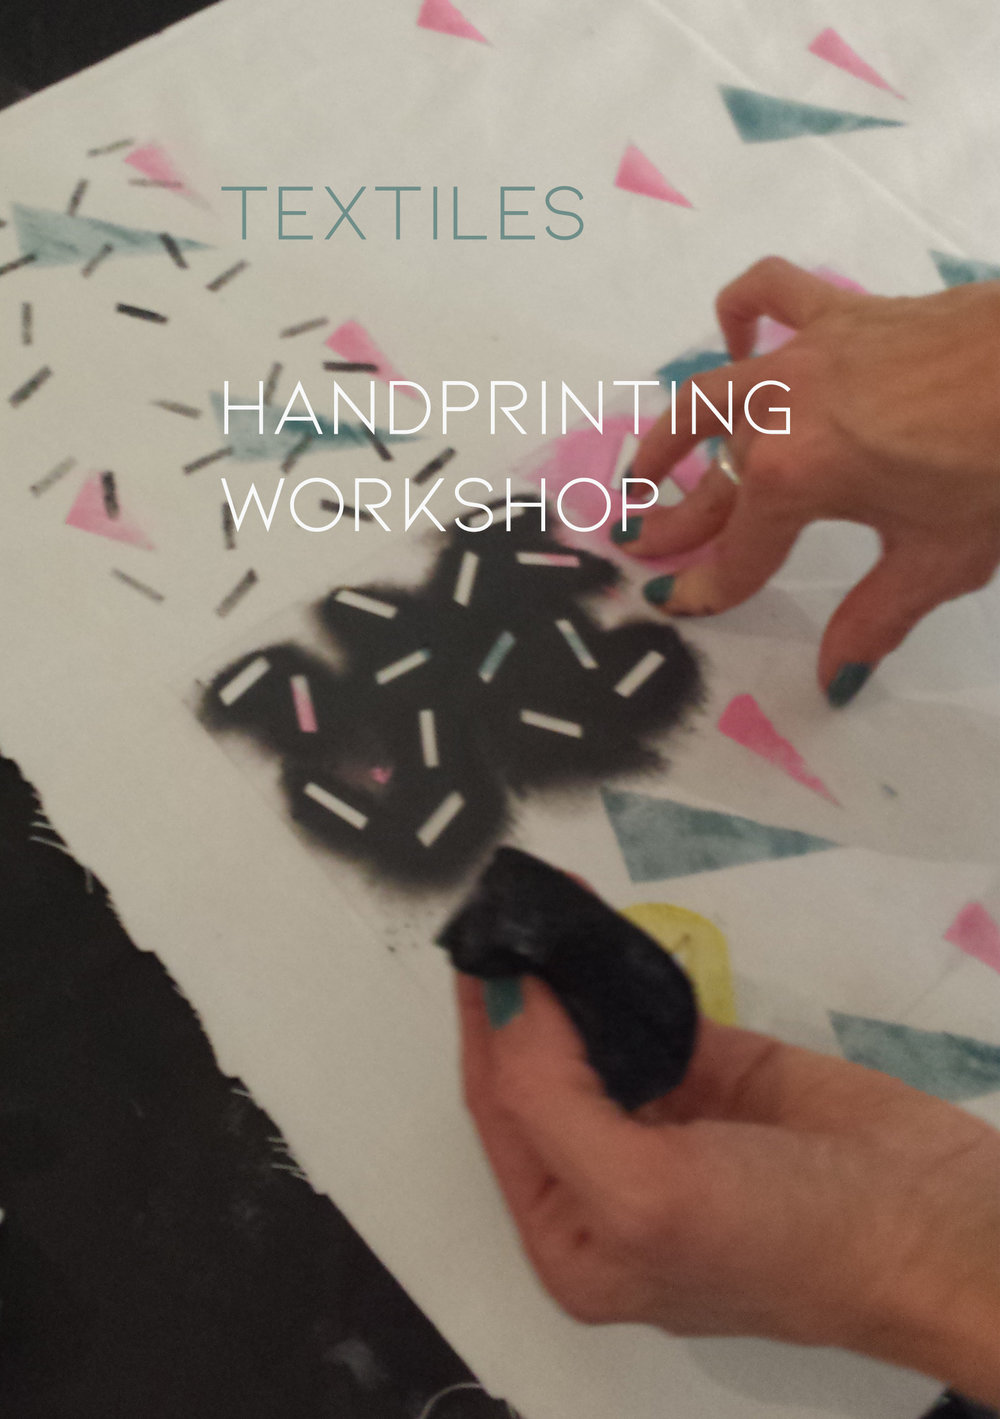 Handprinting workshop 1 - Dinah Smutny.jpg